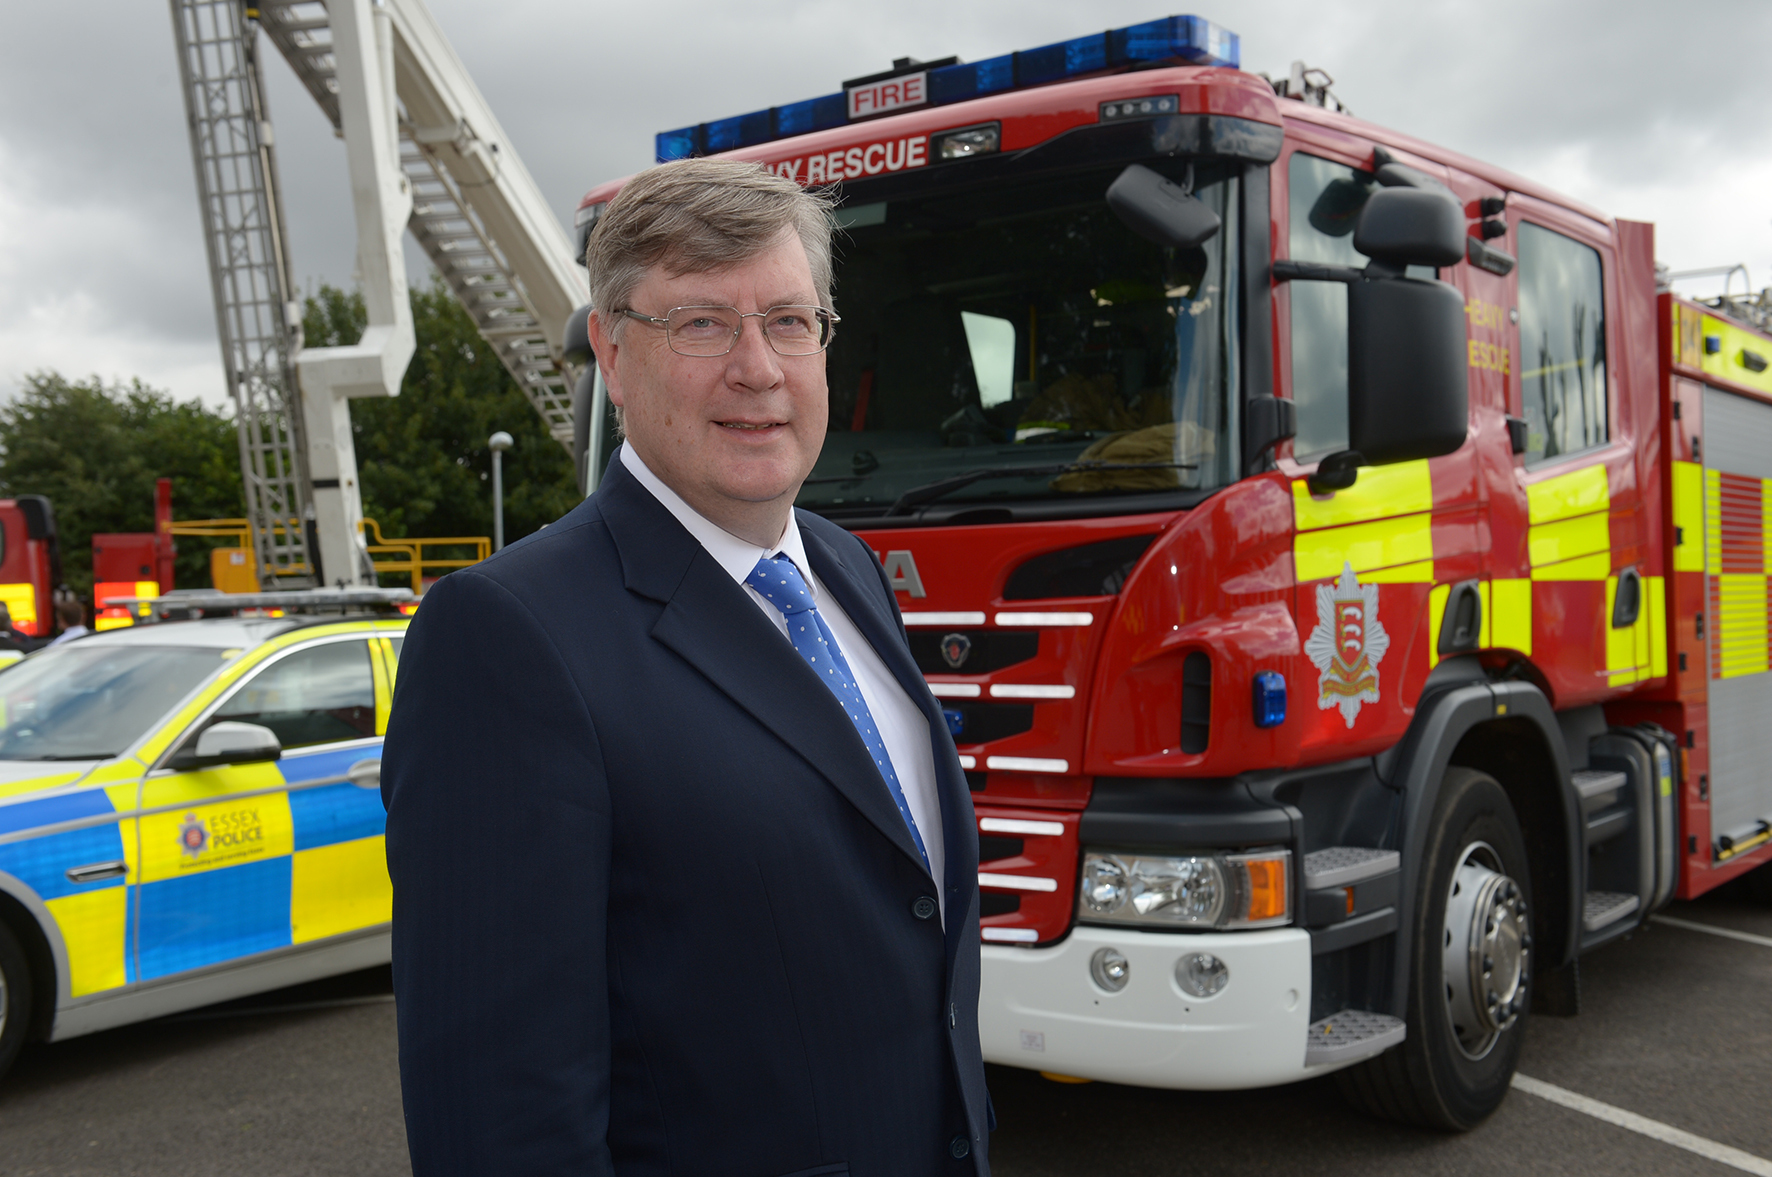 Funding - police, fire and crime Commissioner for Essex Roger Hirst